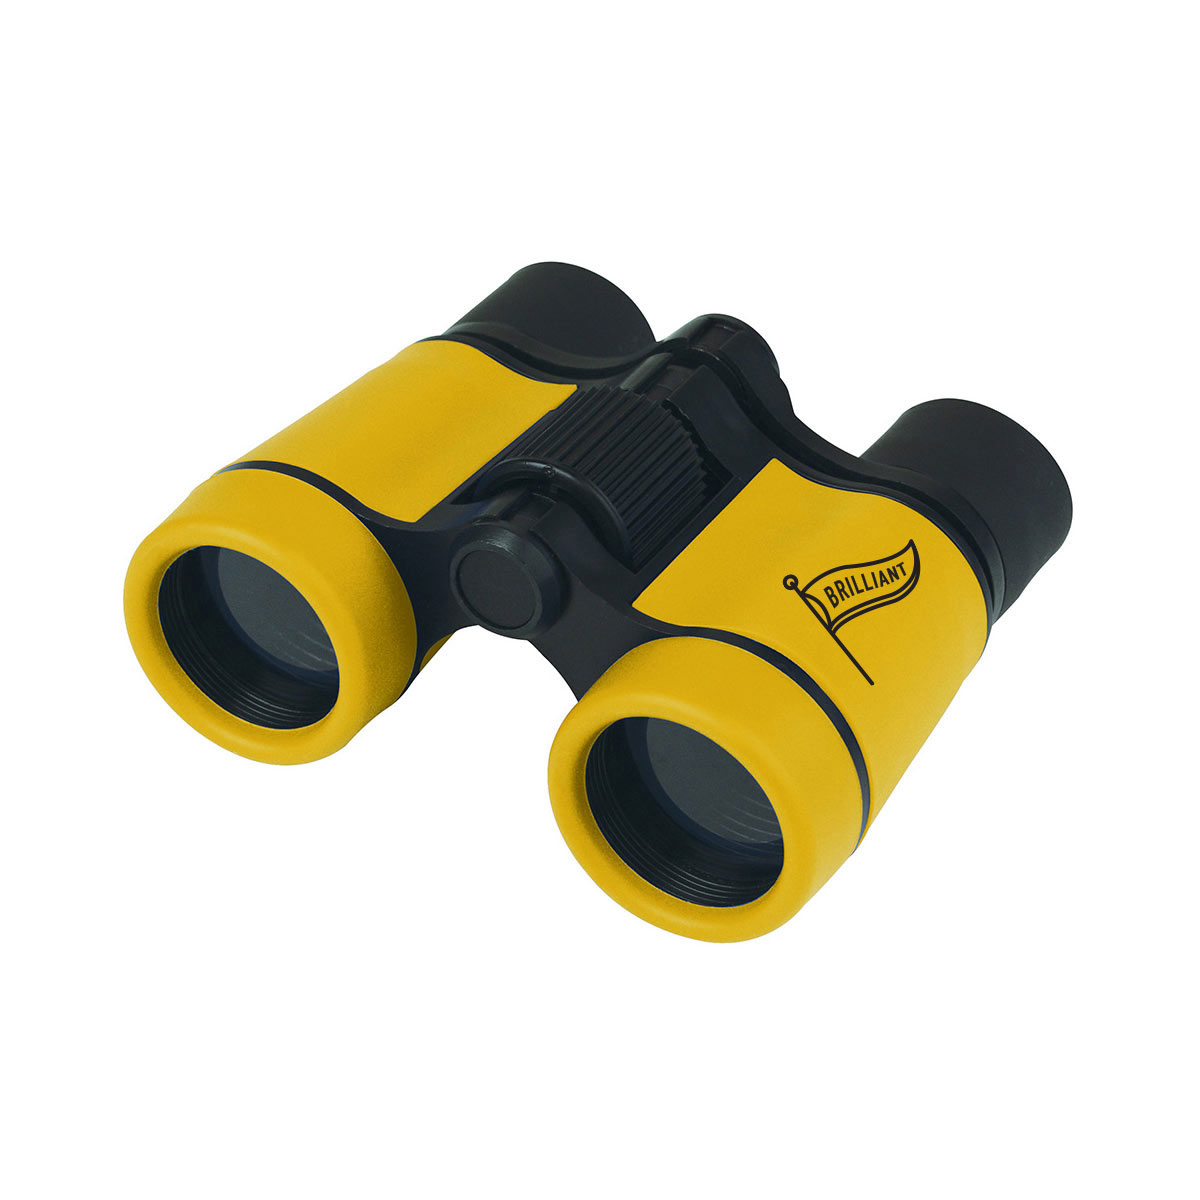 229136 travel binoculars one color one location imprint